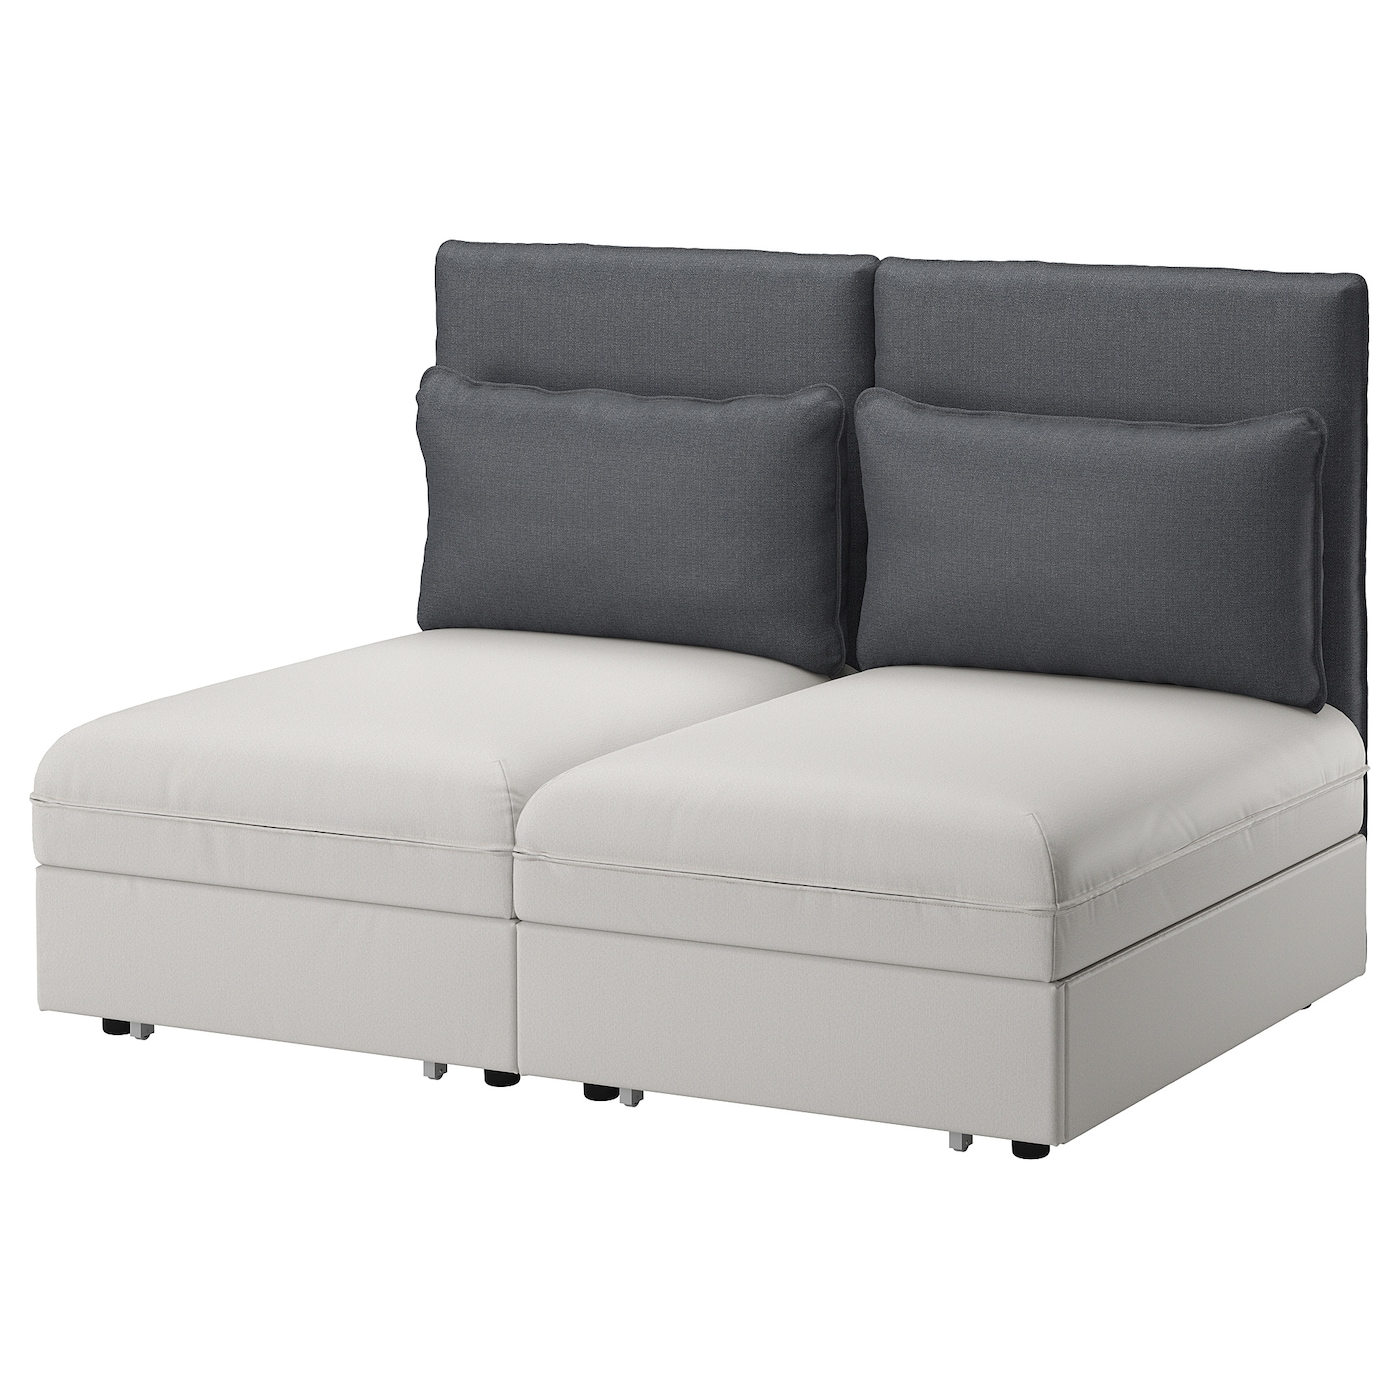 vallentuna 2 seat sofa with bed ramna light grey hillared dark grey ikea. Black Bedroom Furniture Sets. Home Design Ideas